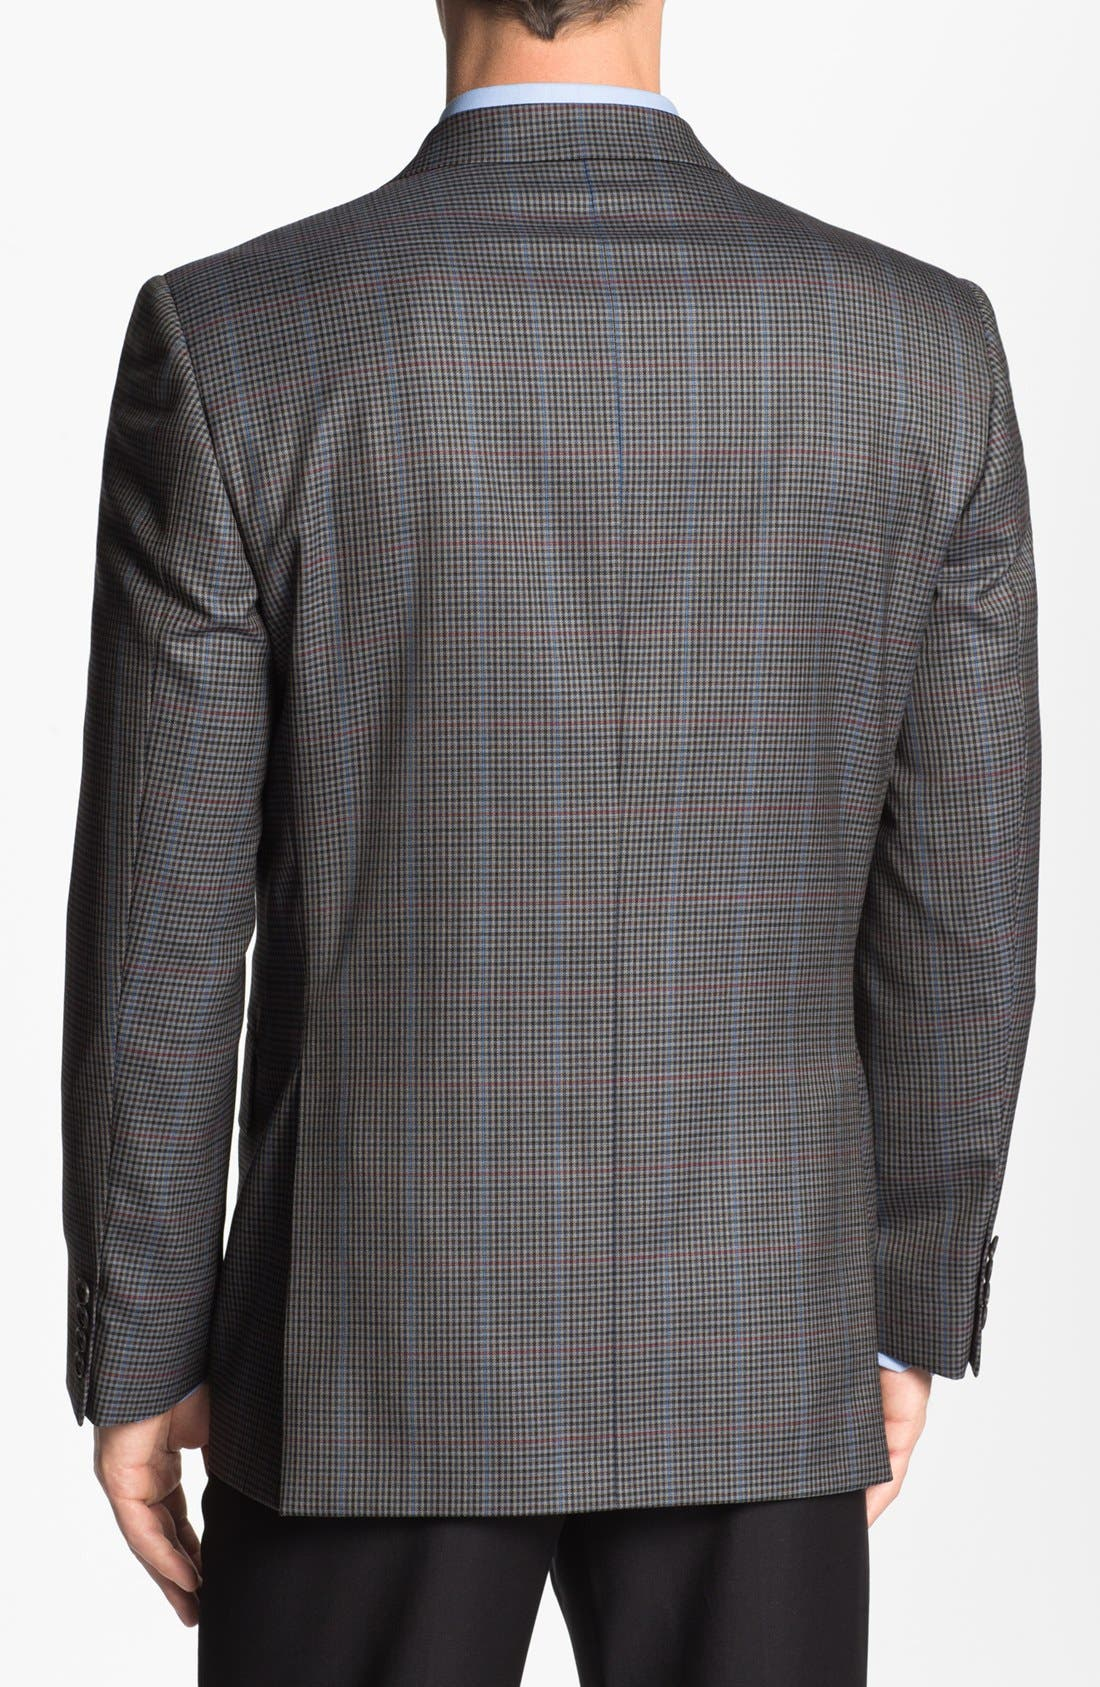 Alternate Image 3  - Joseph Abboud 'Signature Silver' Check Wool Sportcoat